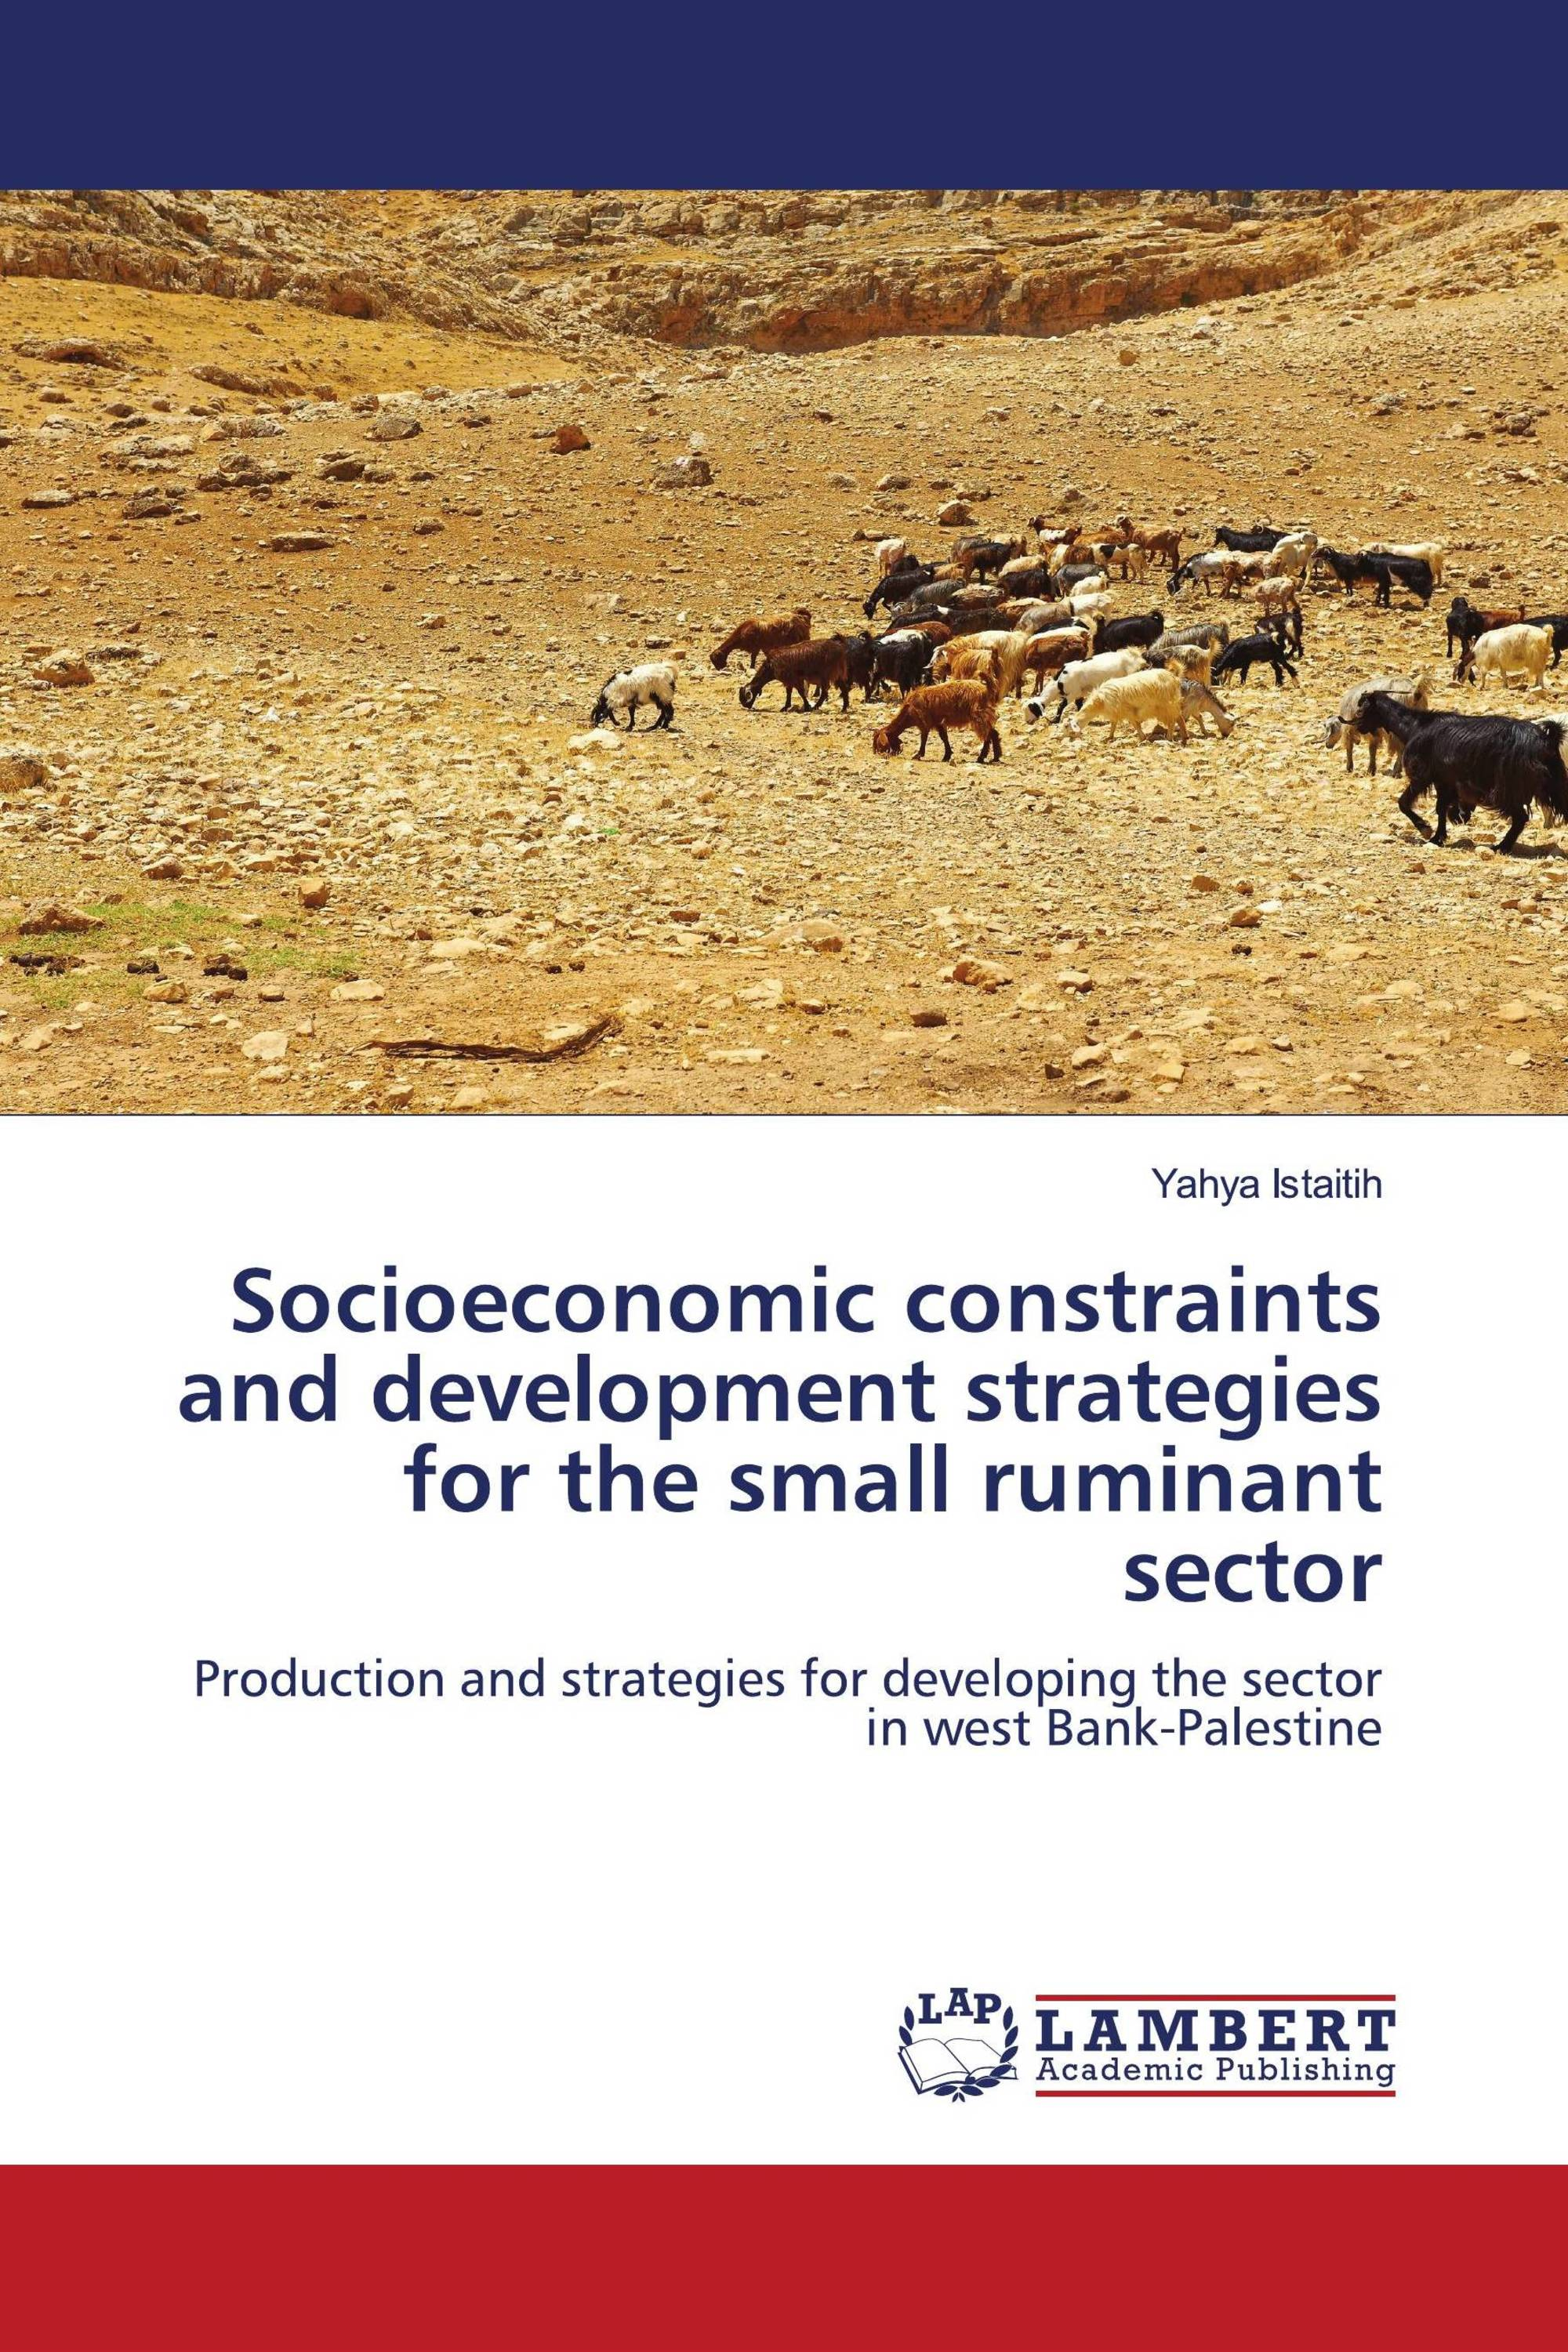 Socioeconomic constrains and development strategies for the small ruminant sector